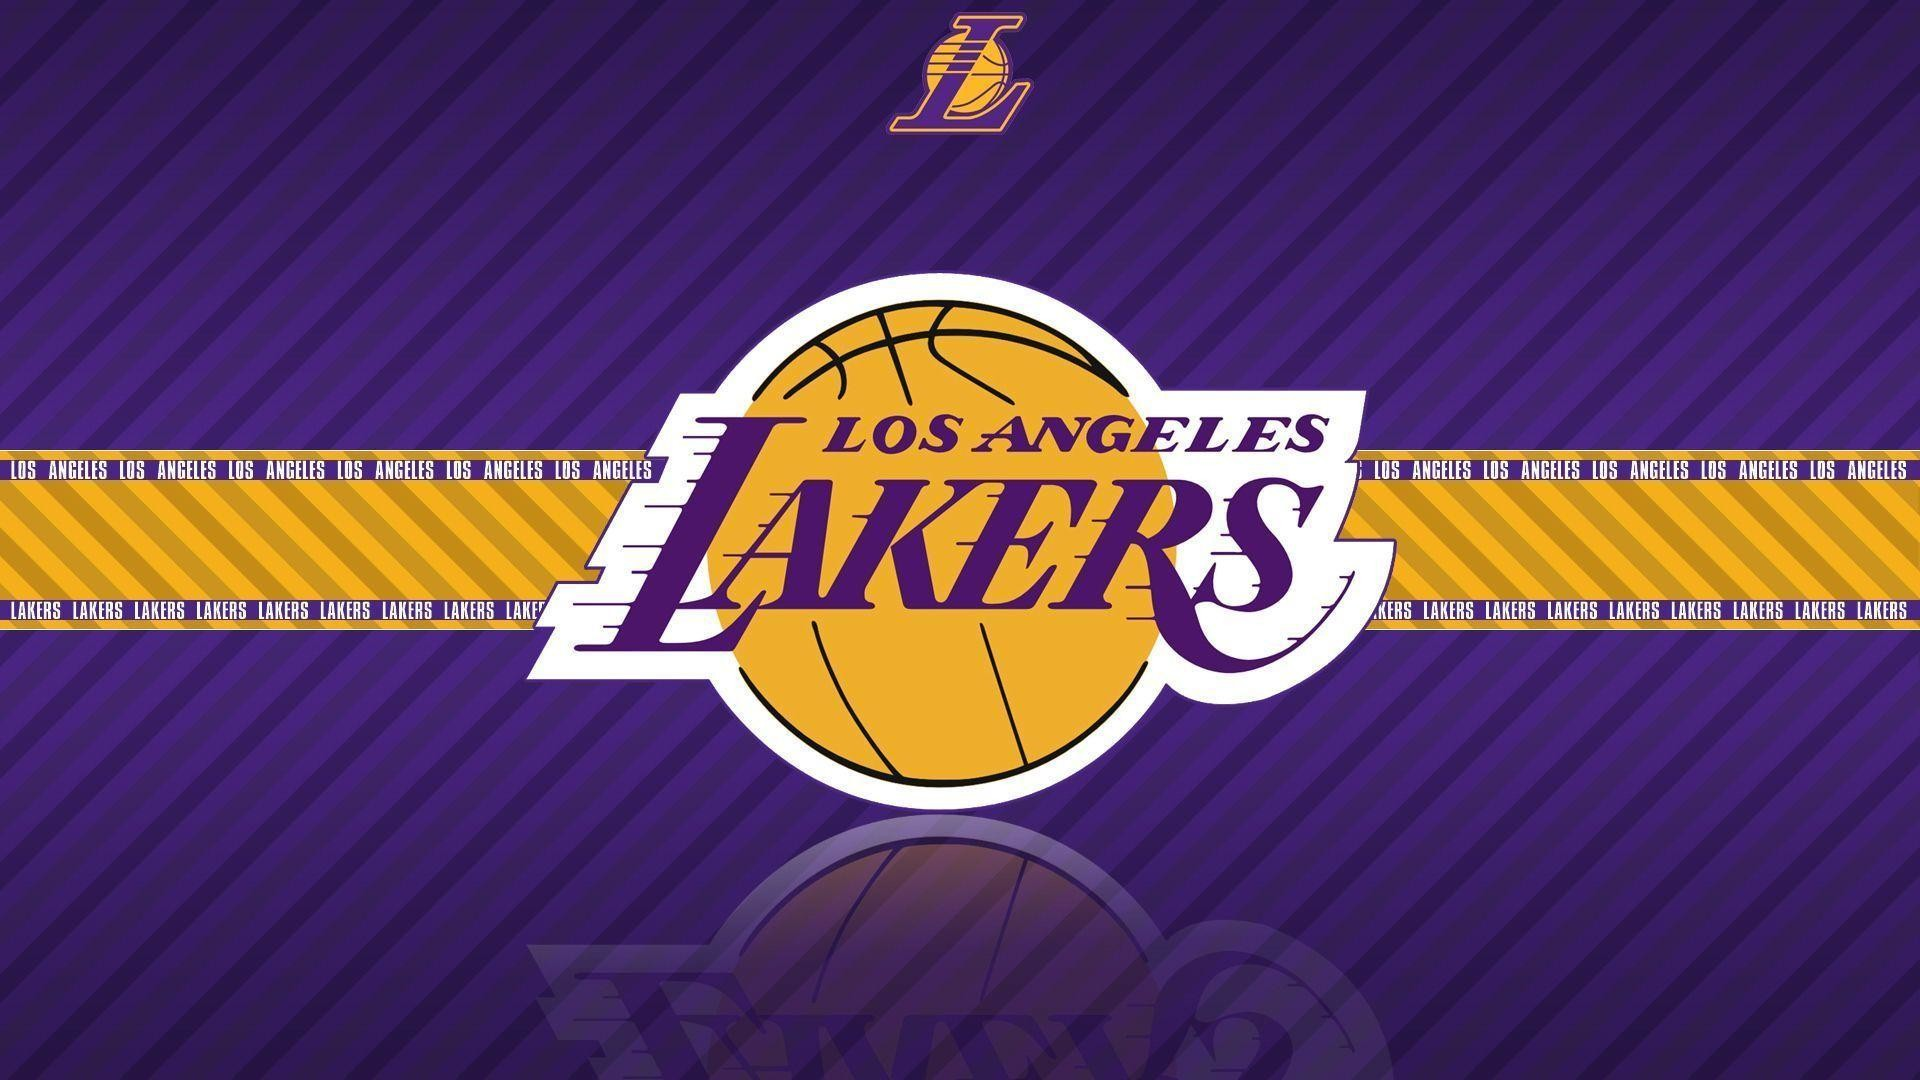 Nba team logos wallpaper 60 images 1920x1080 nba logo wallpapers wallpaper cave voltagebd Image collections